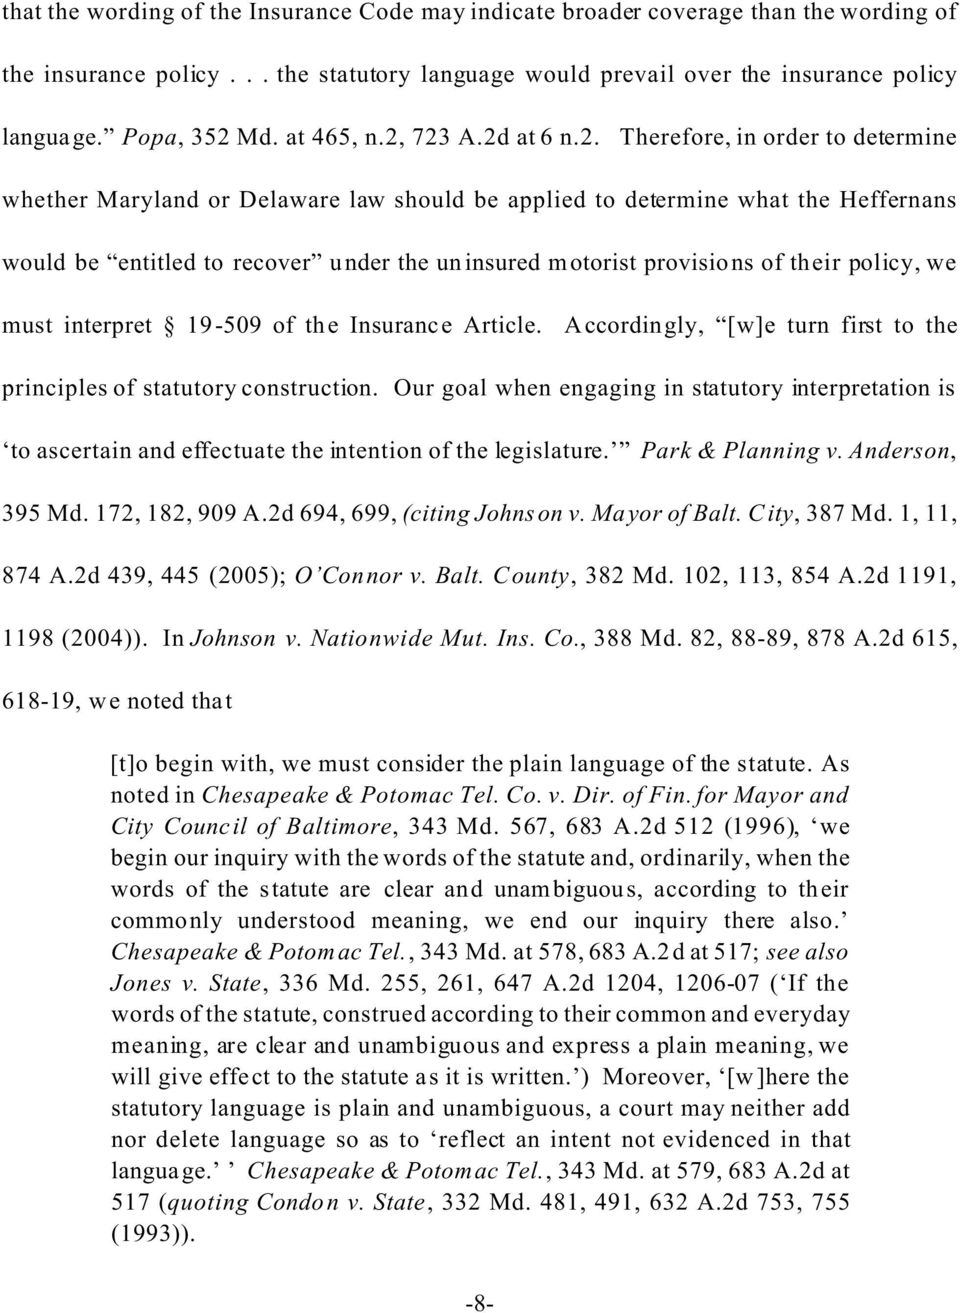 723 A.2d at 6 n.2. Therefore, in order to determine whether Maryland or Delaware law should be applied to determine what the Heffernans would be entitled to recover under the uninsured motorist